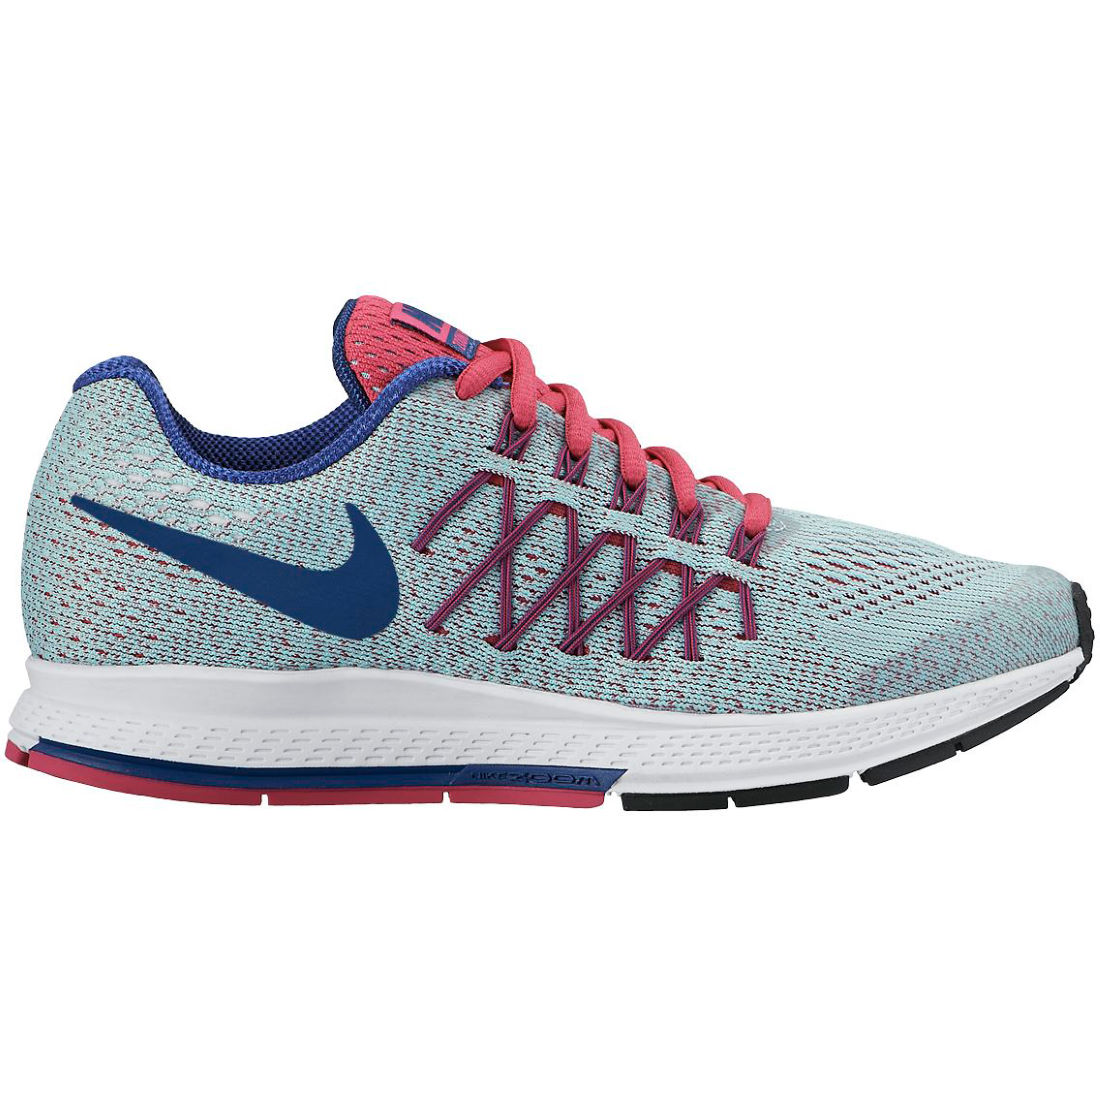 tom seleck - Nike-Zoom-Pegasus-32-Gs-FA15-Cushion-Running-Shoes-Copa-Blue-Pink-Q3-15-759972-400.jpg?w=1100&h=1100&a=7